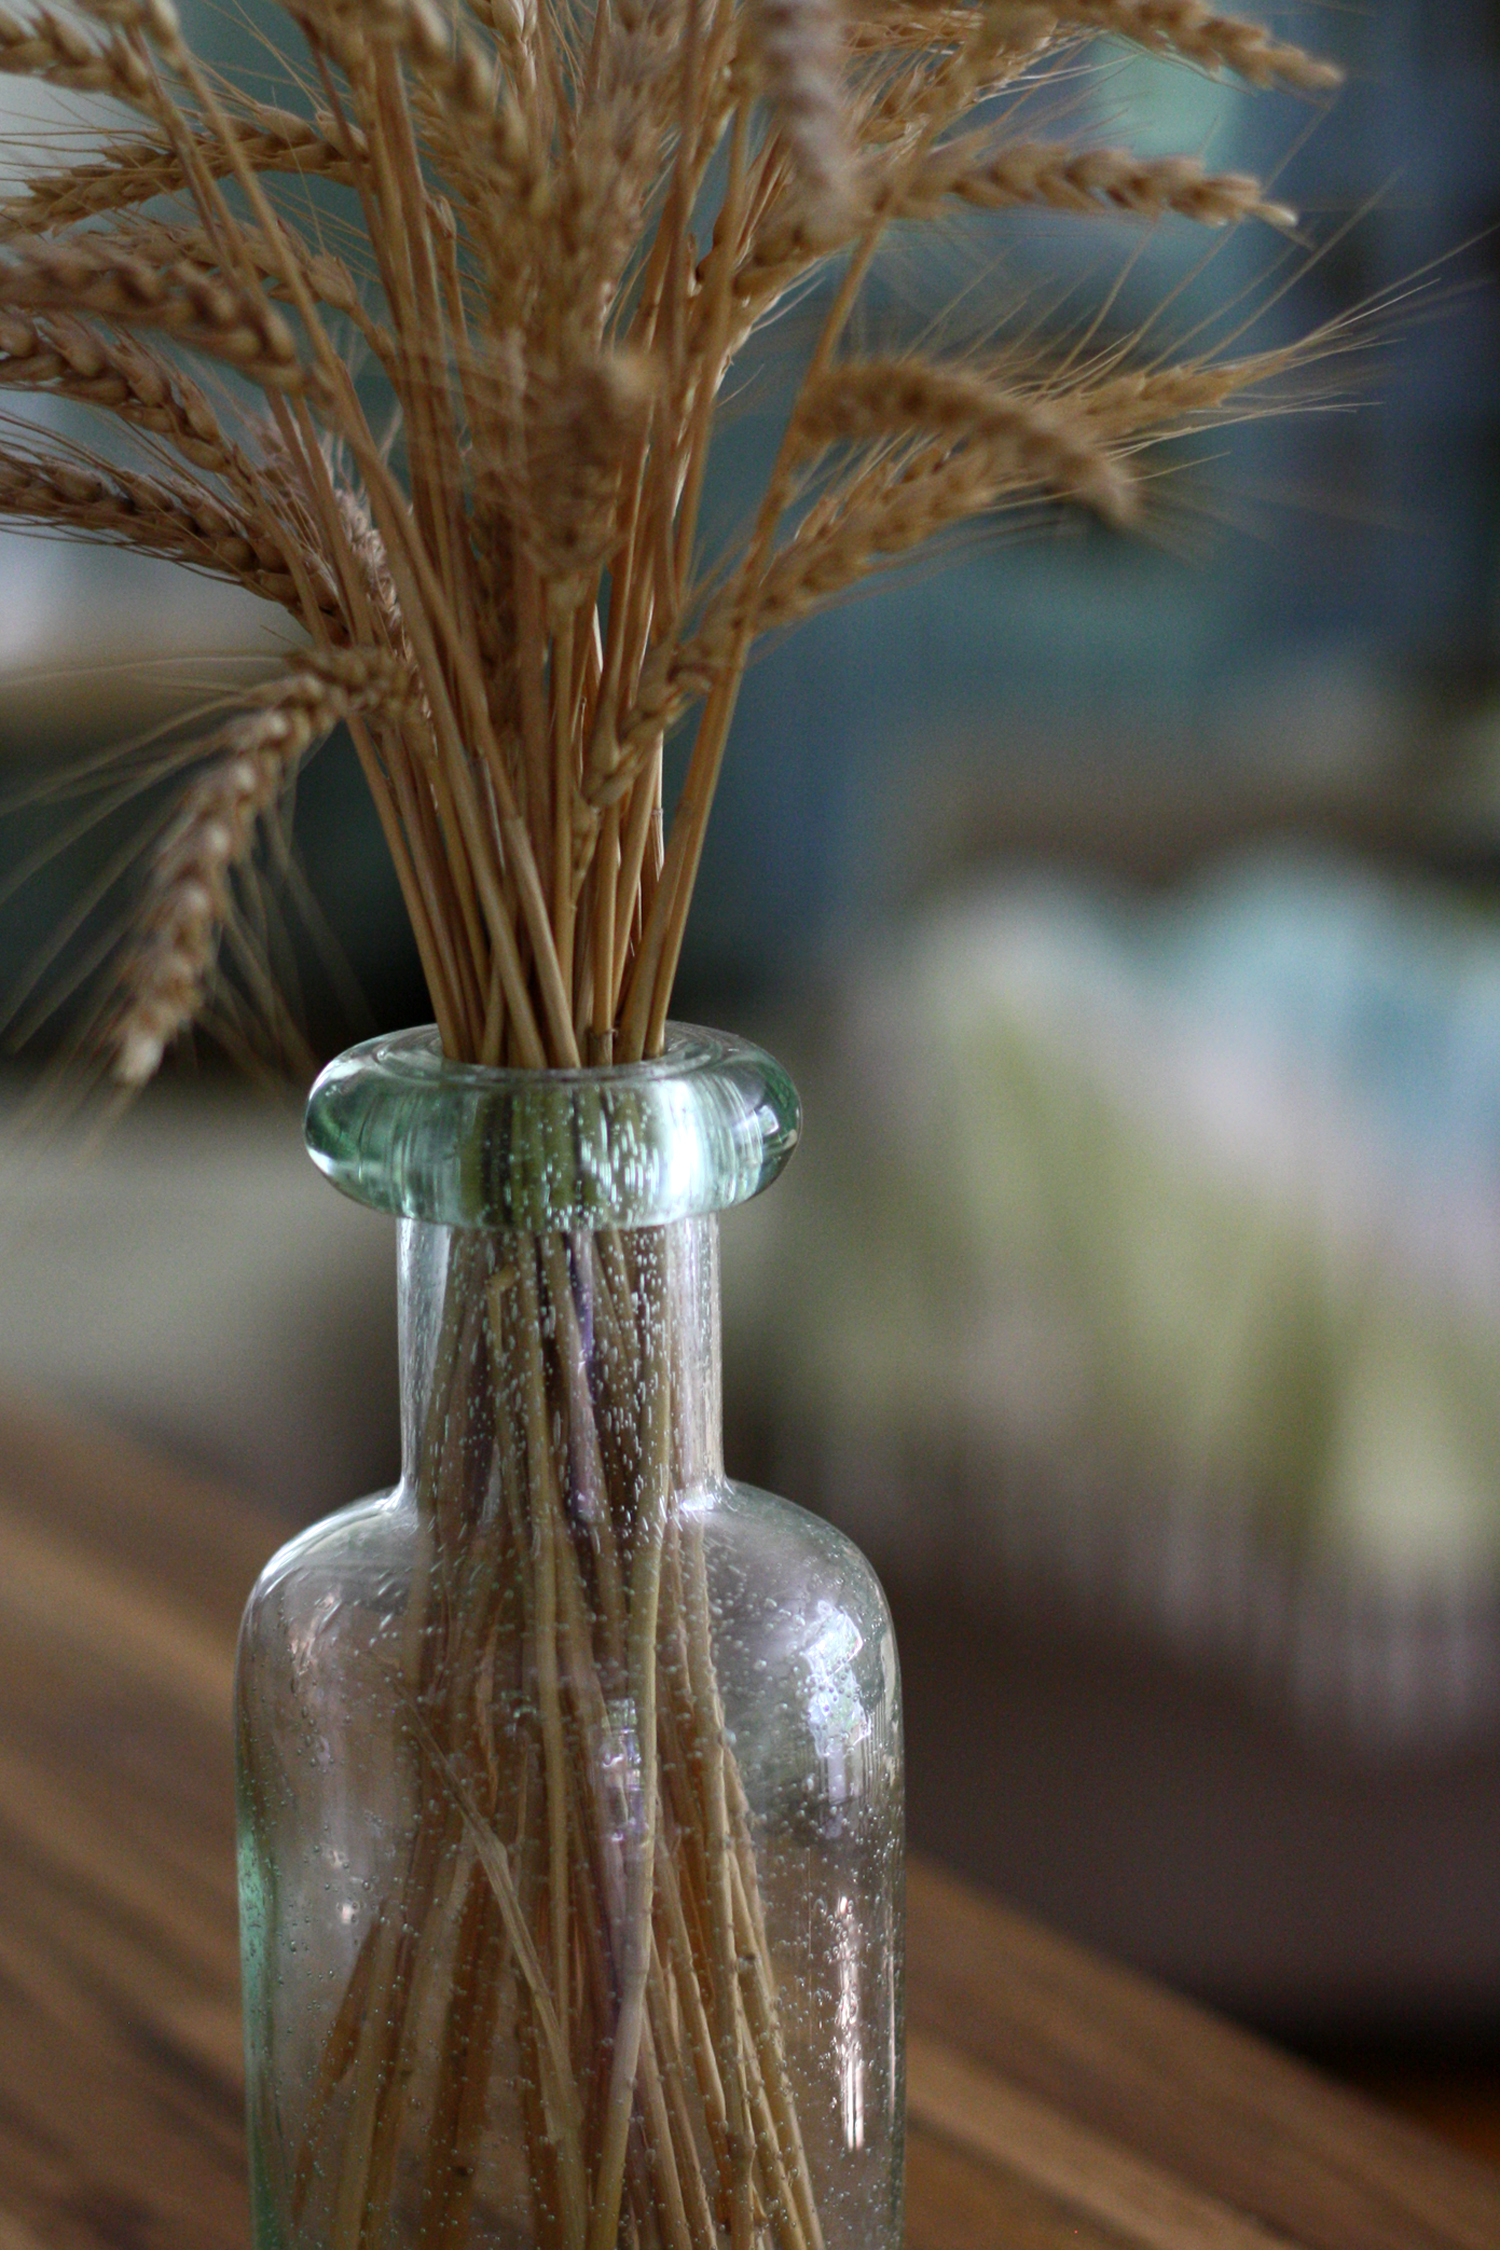 Kansas wheat in Connecticut glass 3